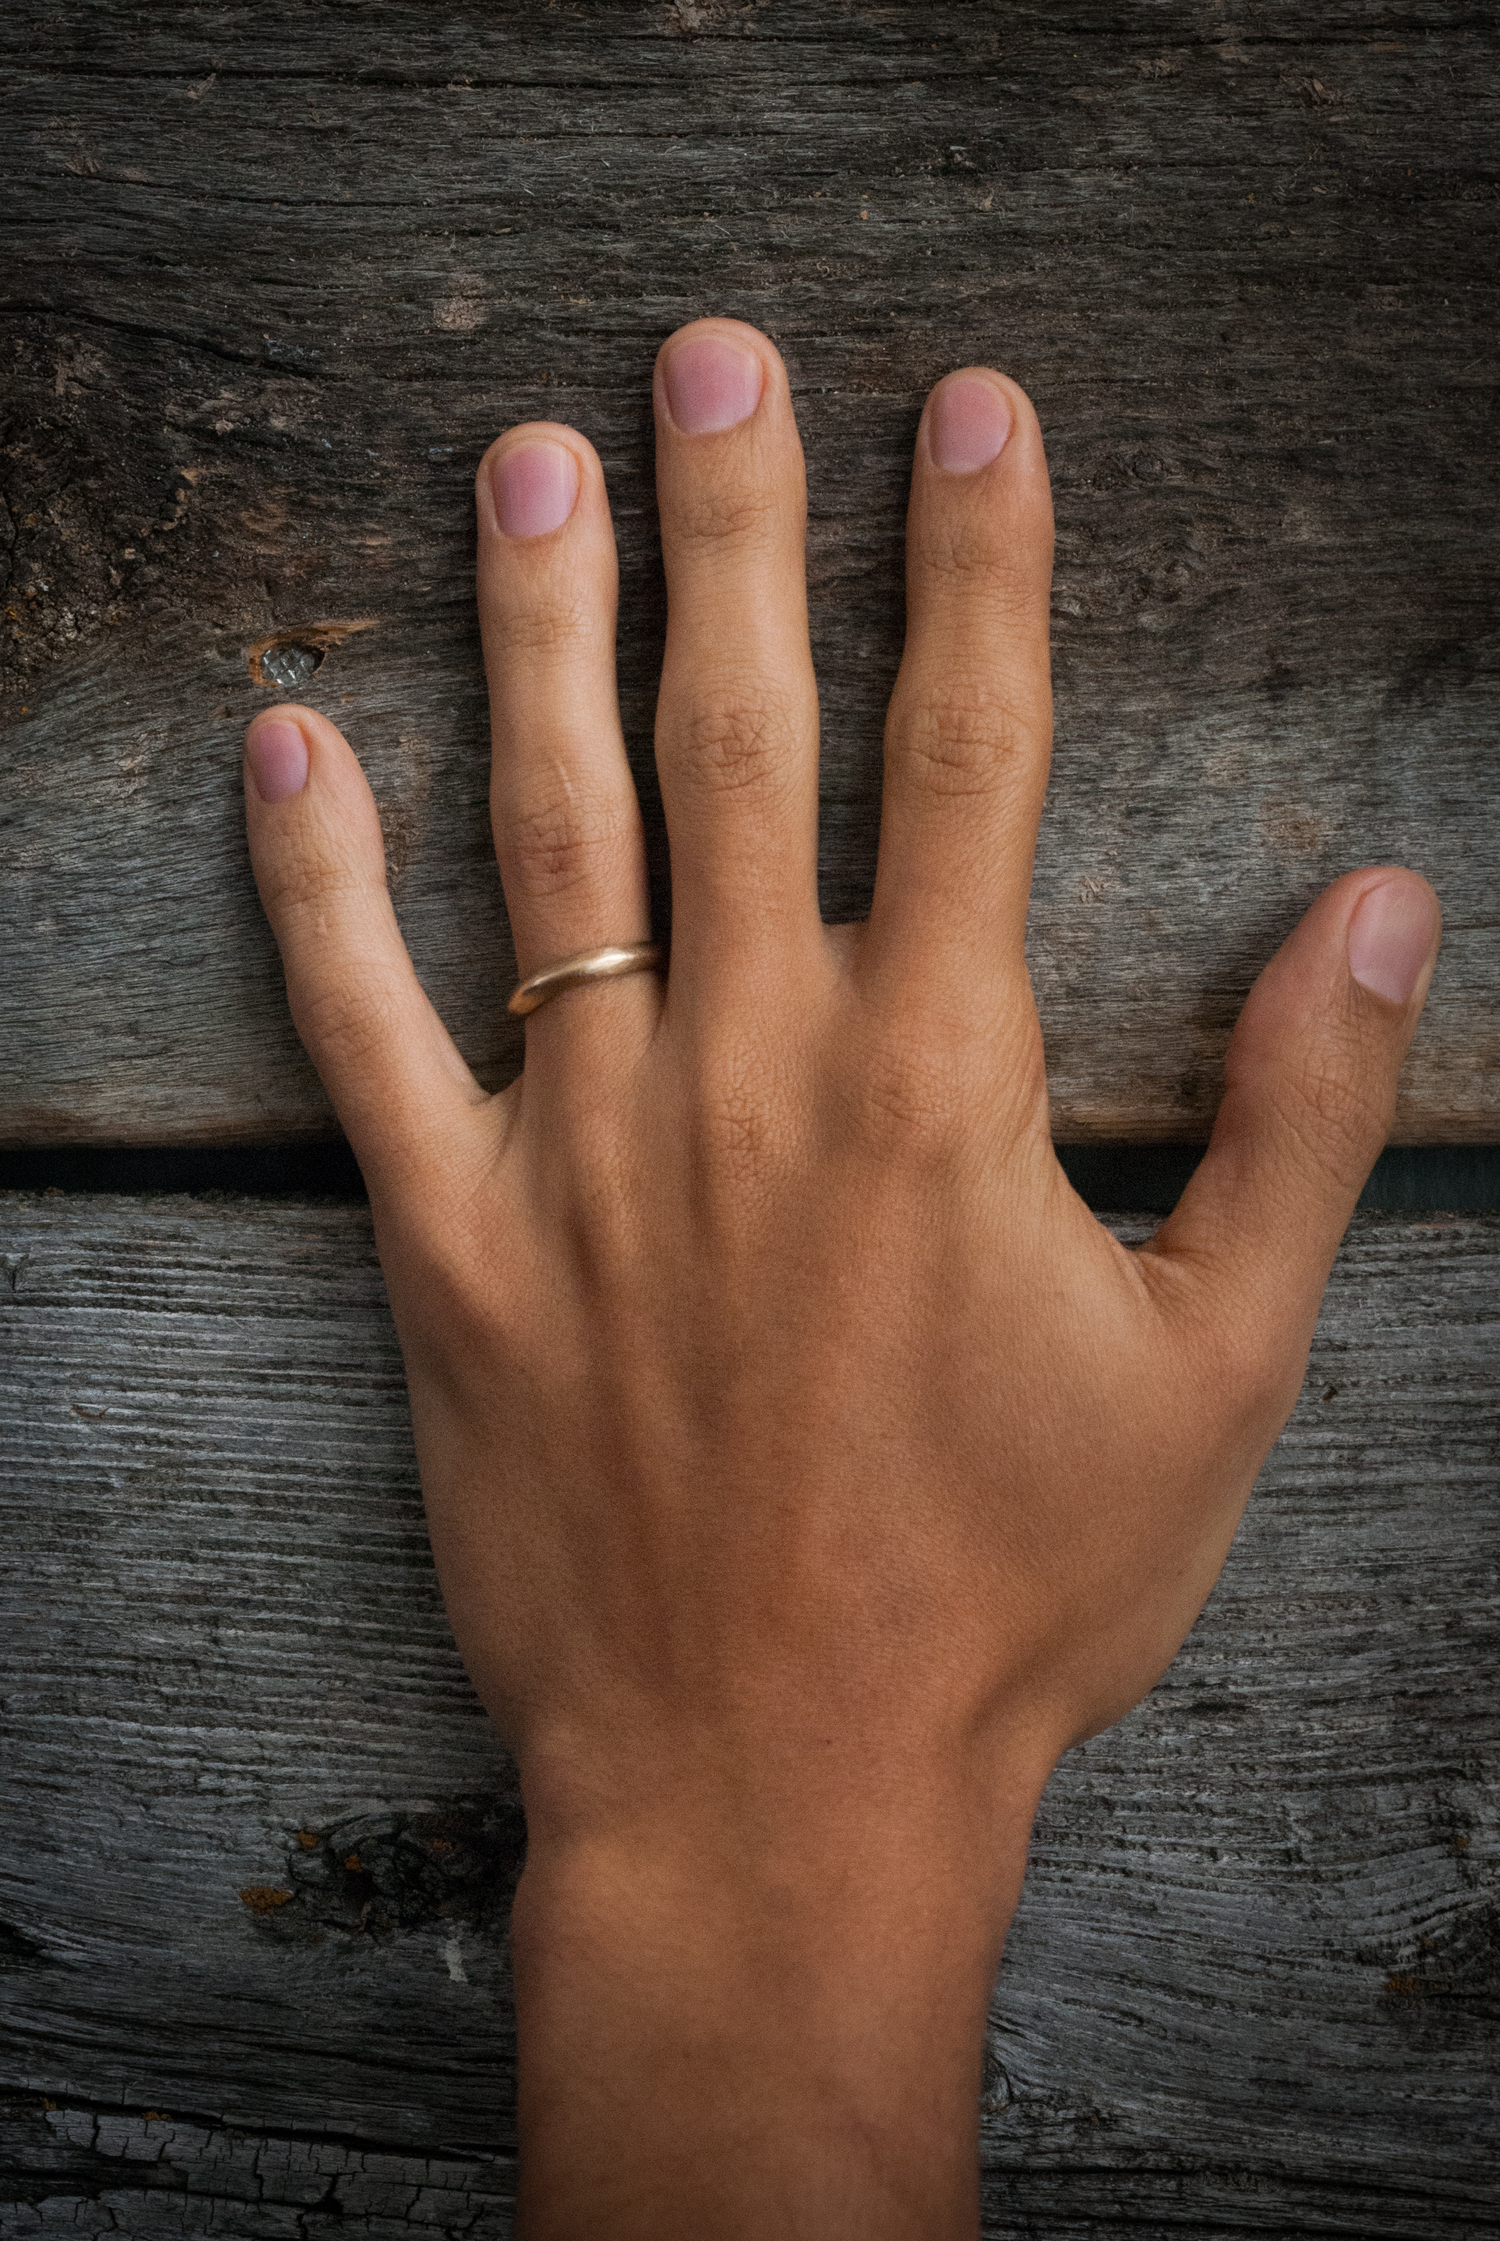 The Knife Band by Kate Ellen | Ethical, Matching Wedding Bands | Keeper & Co.